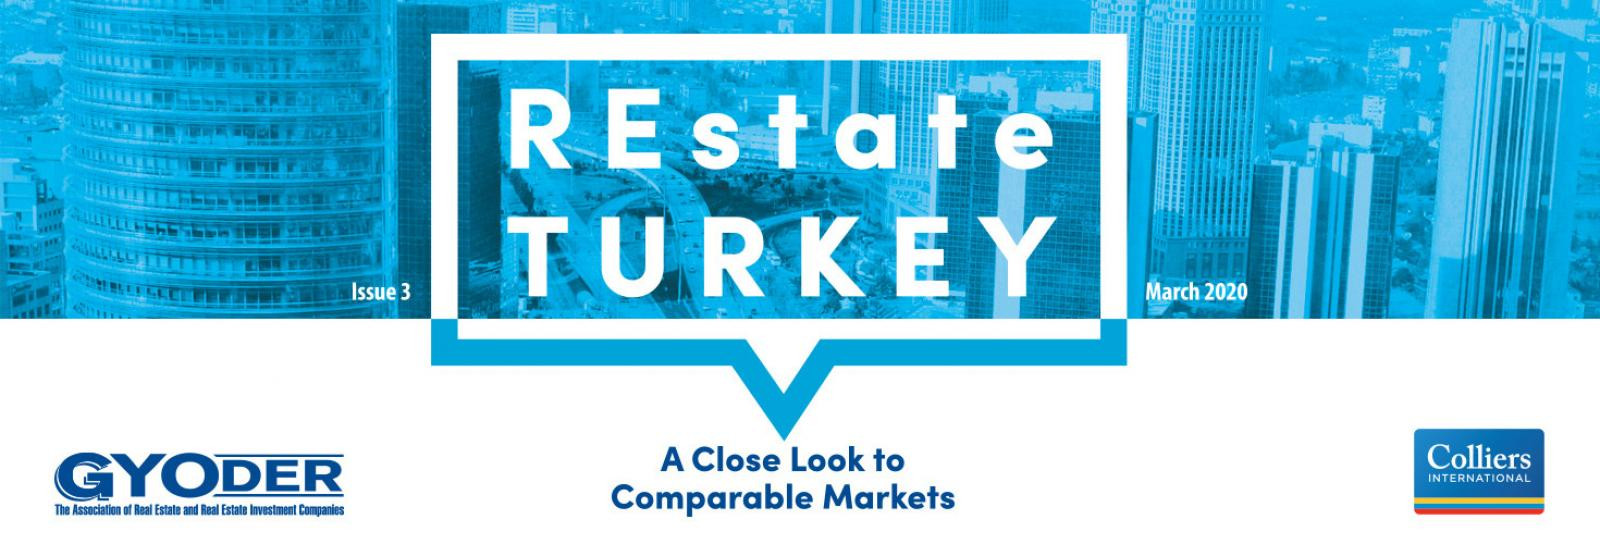 REstate Turkey – A Close Look to Comparable Markets / ISSUE 3